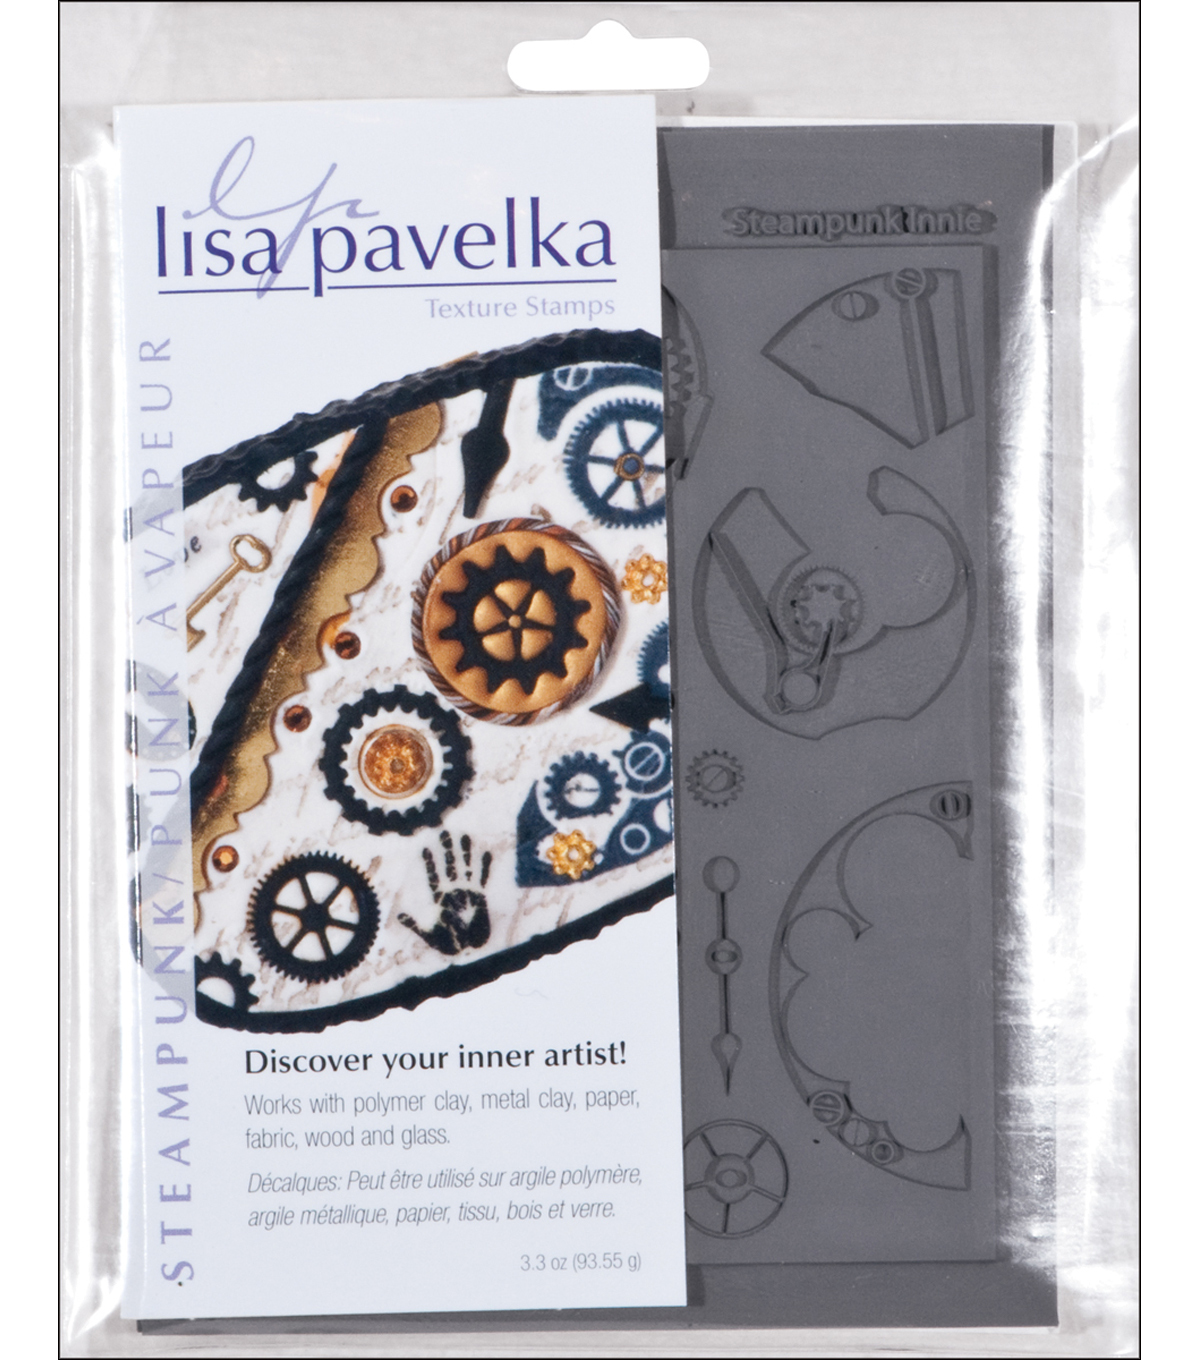 Lisa Pavelka Stamp Sheets-2PK/Steampunk